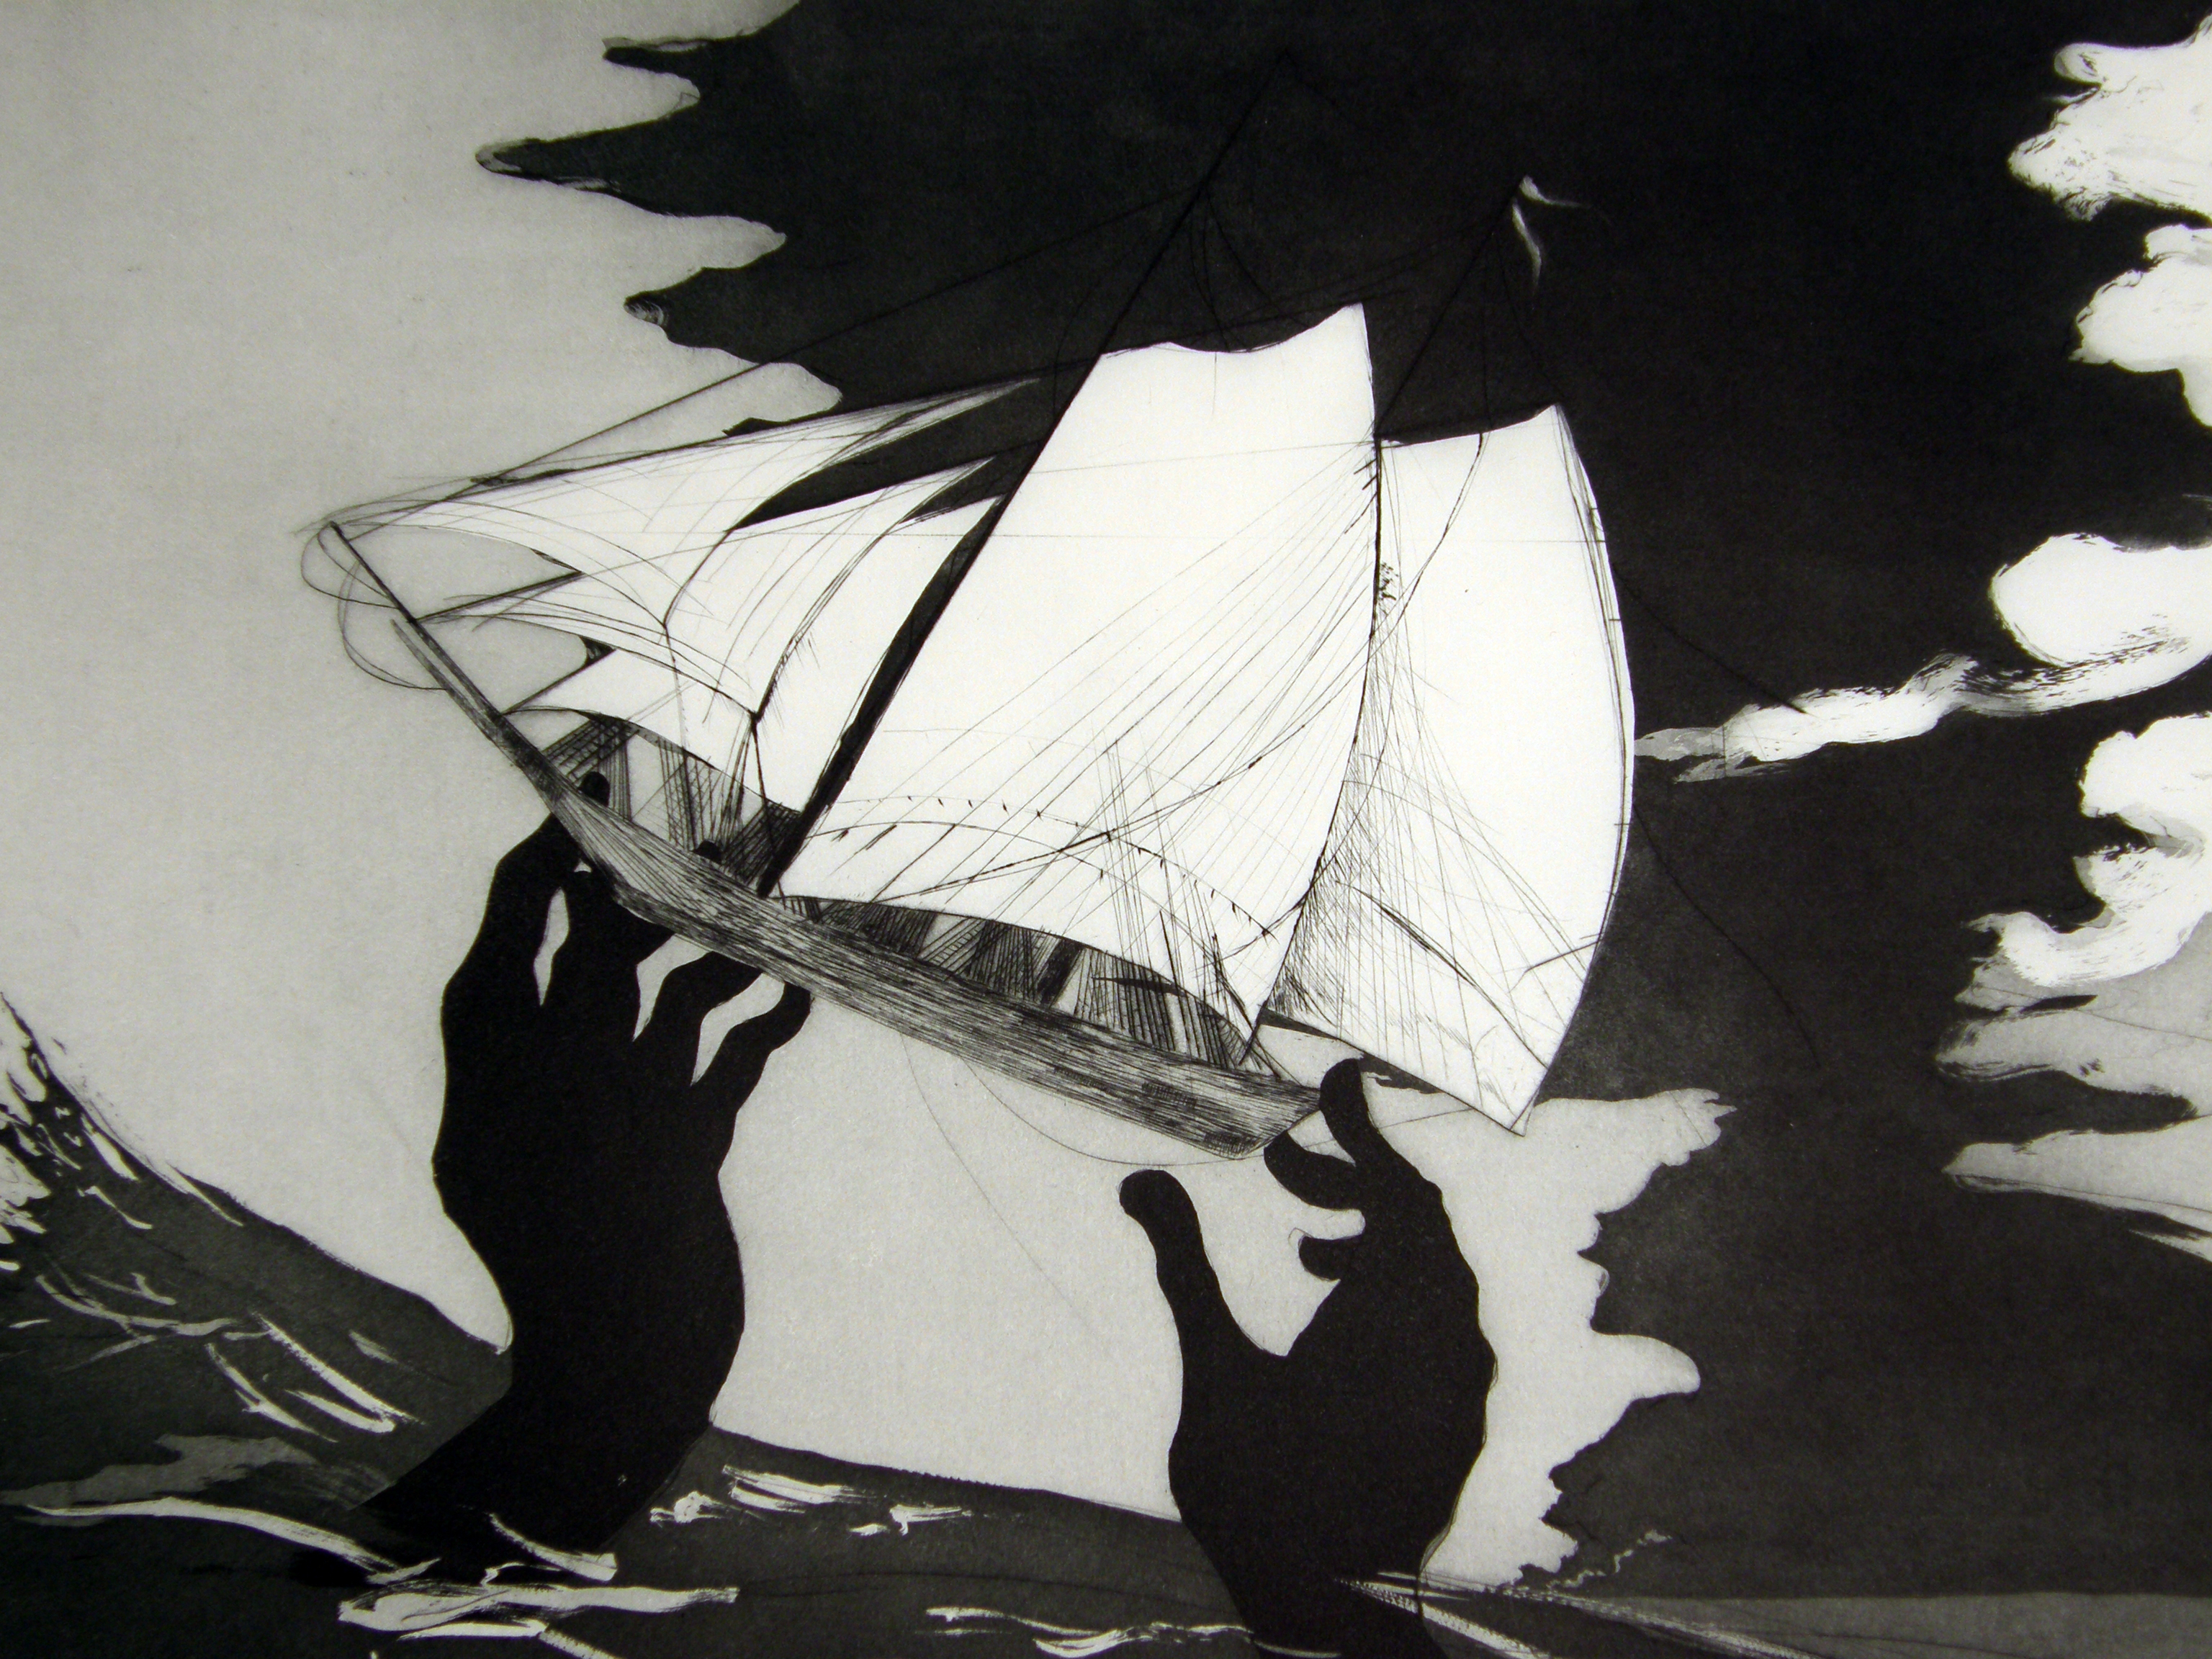 Kara Walker, detail van 'No world', ets, 2010